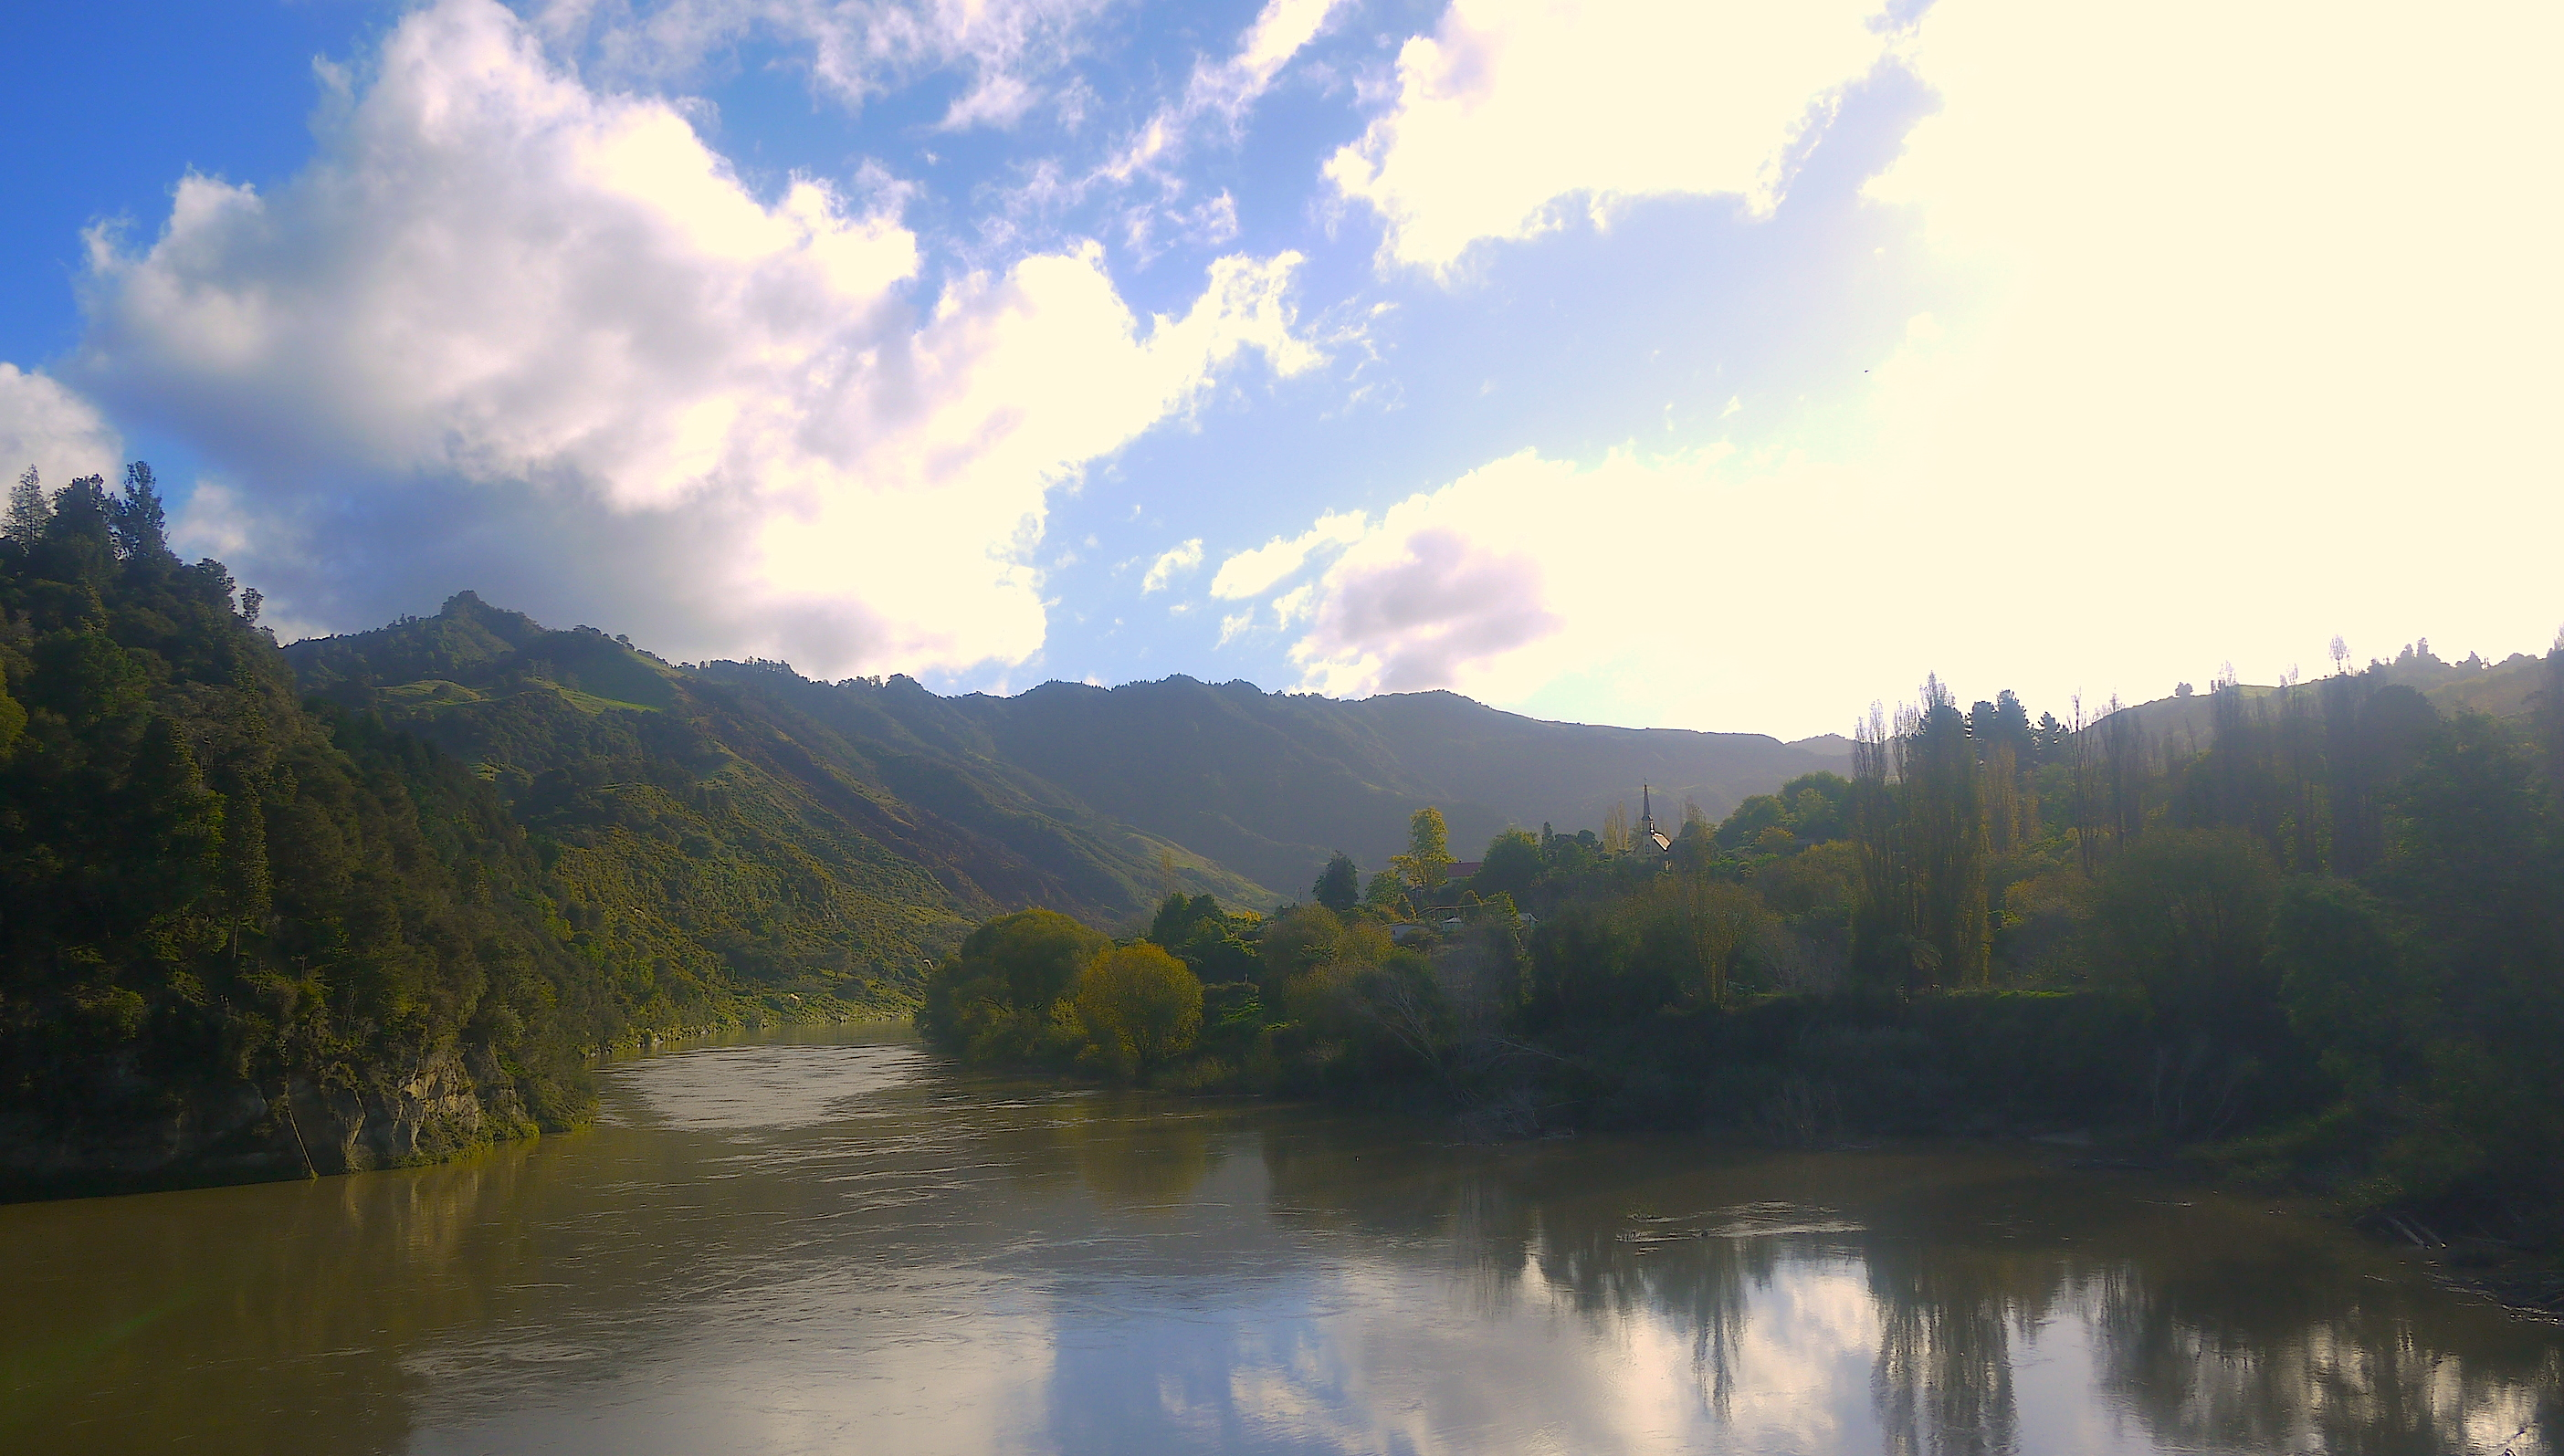 The Church at Jerusalem, on the bend of the Whanganui River